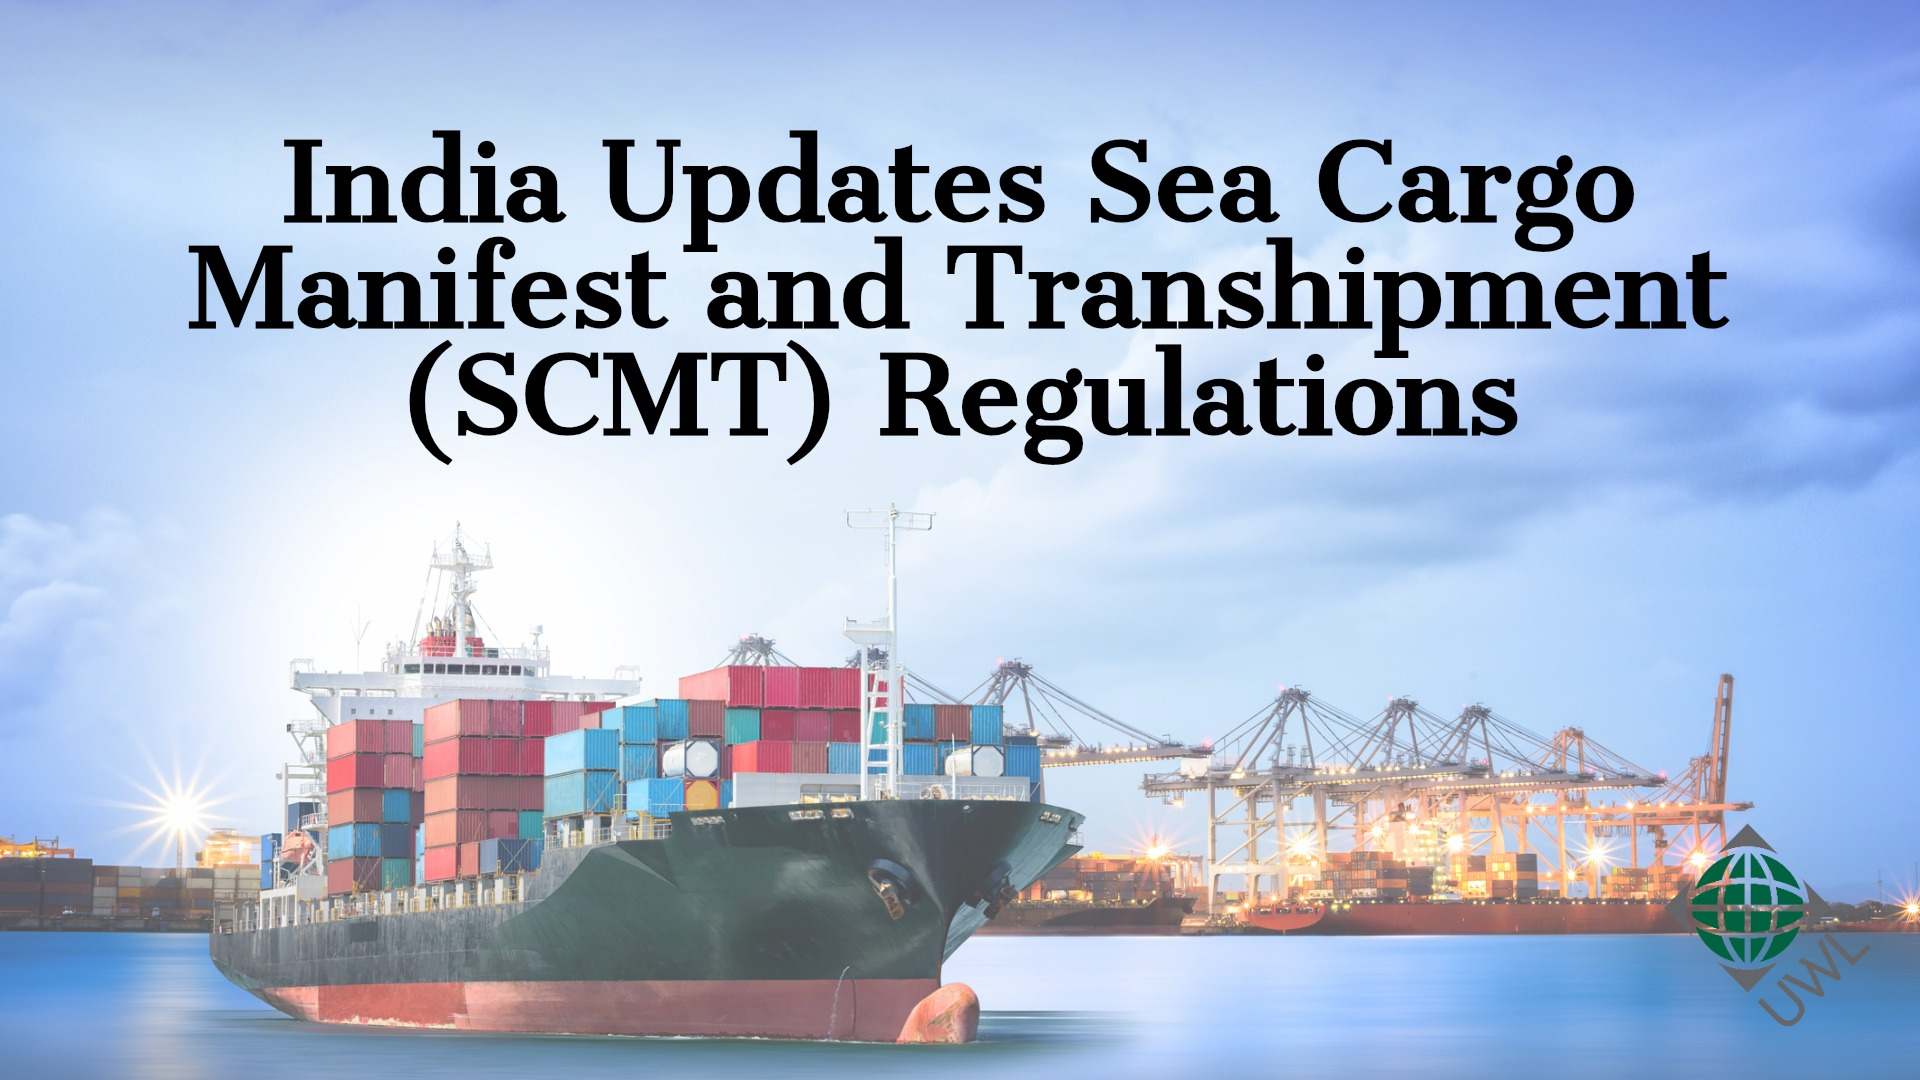 India Updates Sea Cargo Manifest and Transhipment (SCMT) Regulations